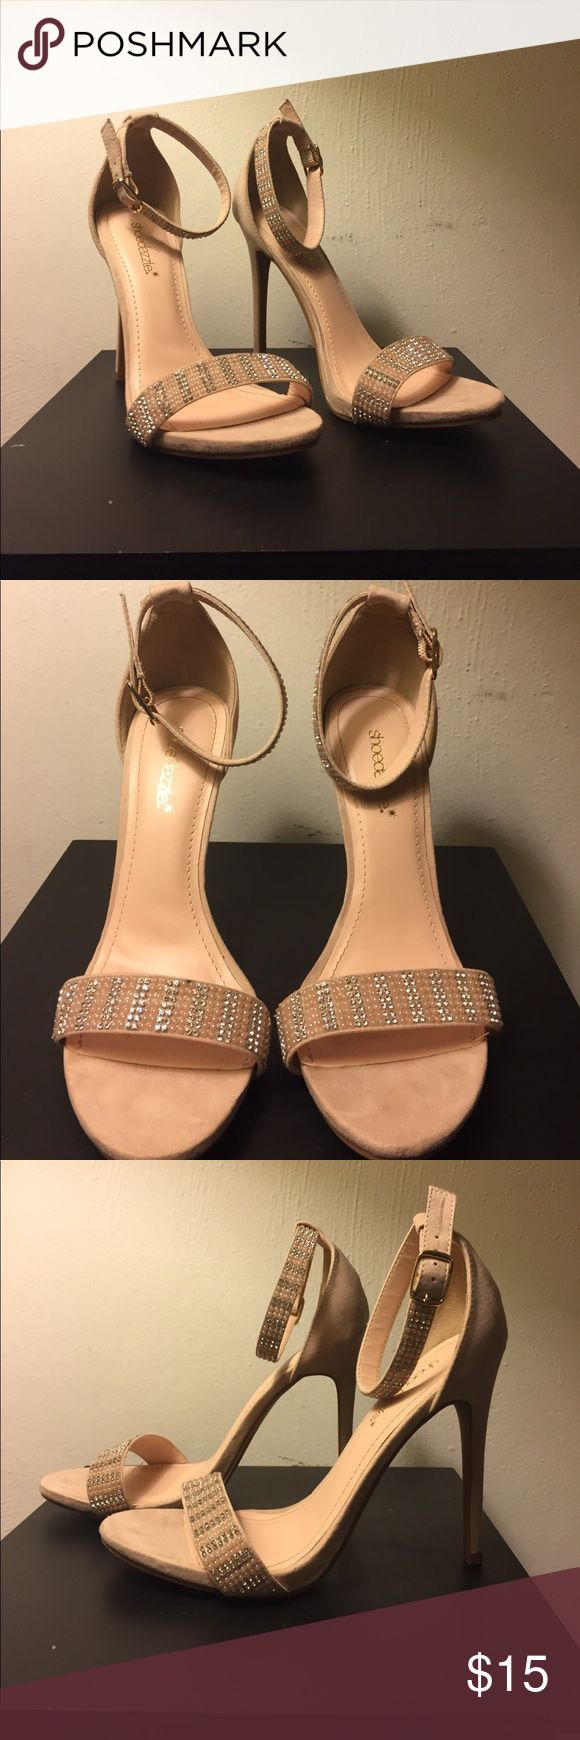 Blush Pink Shoe Dazzle Heels Worn but in amazing condition still.  They're very comfortable.  Price is firm because of how low I'm pricing them. Unless you put them in a bundle I can possibly come down in price. Shoe Dazzle Shoes Heels